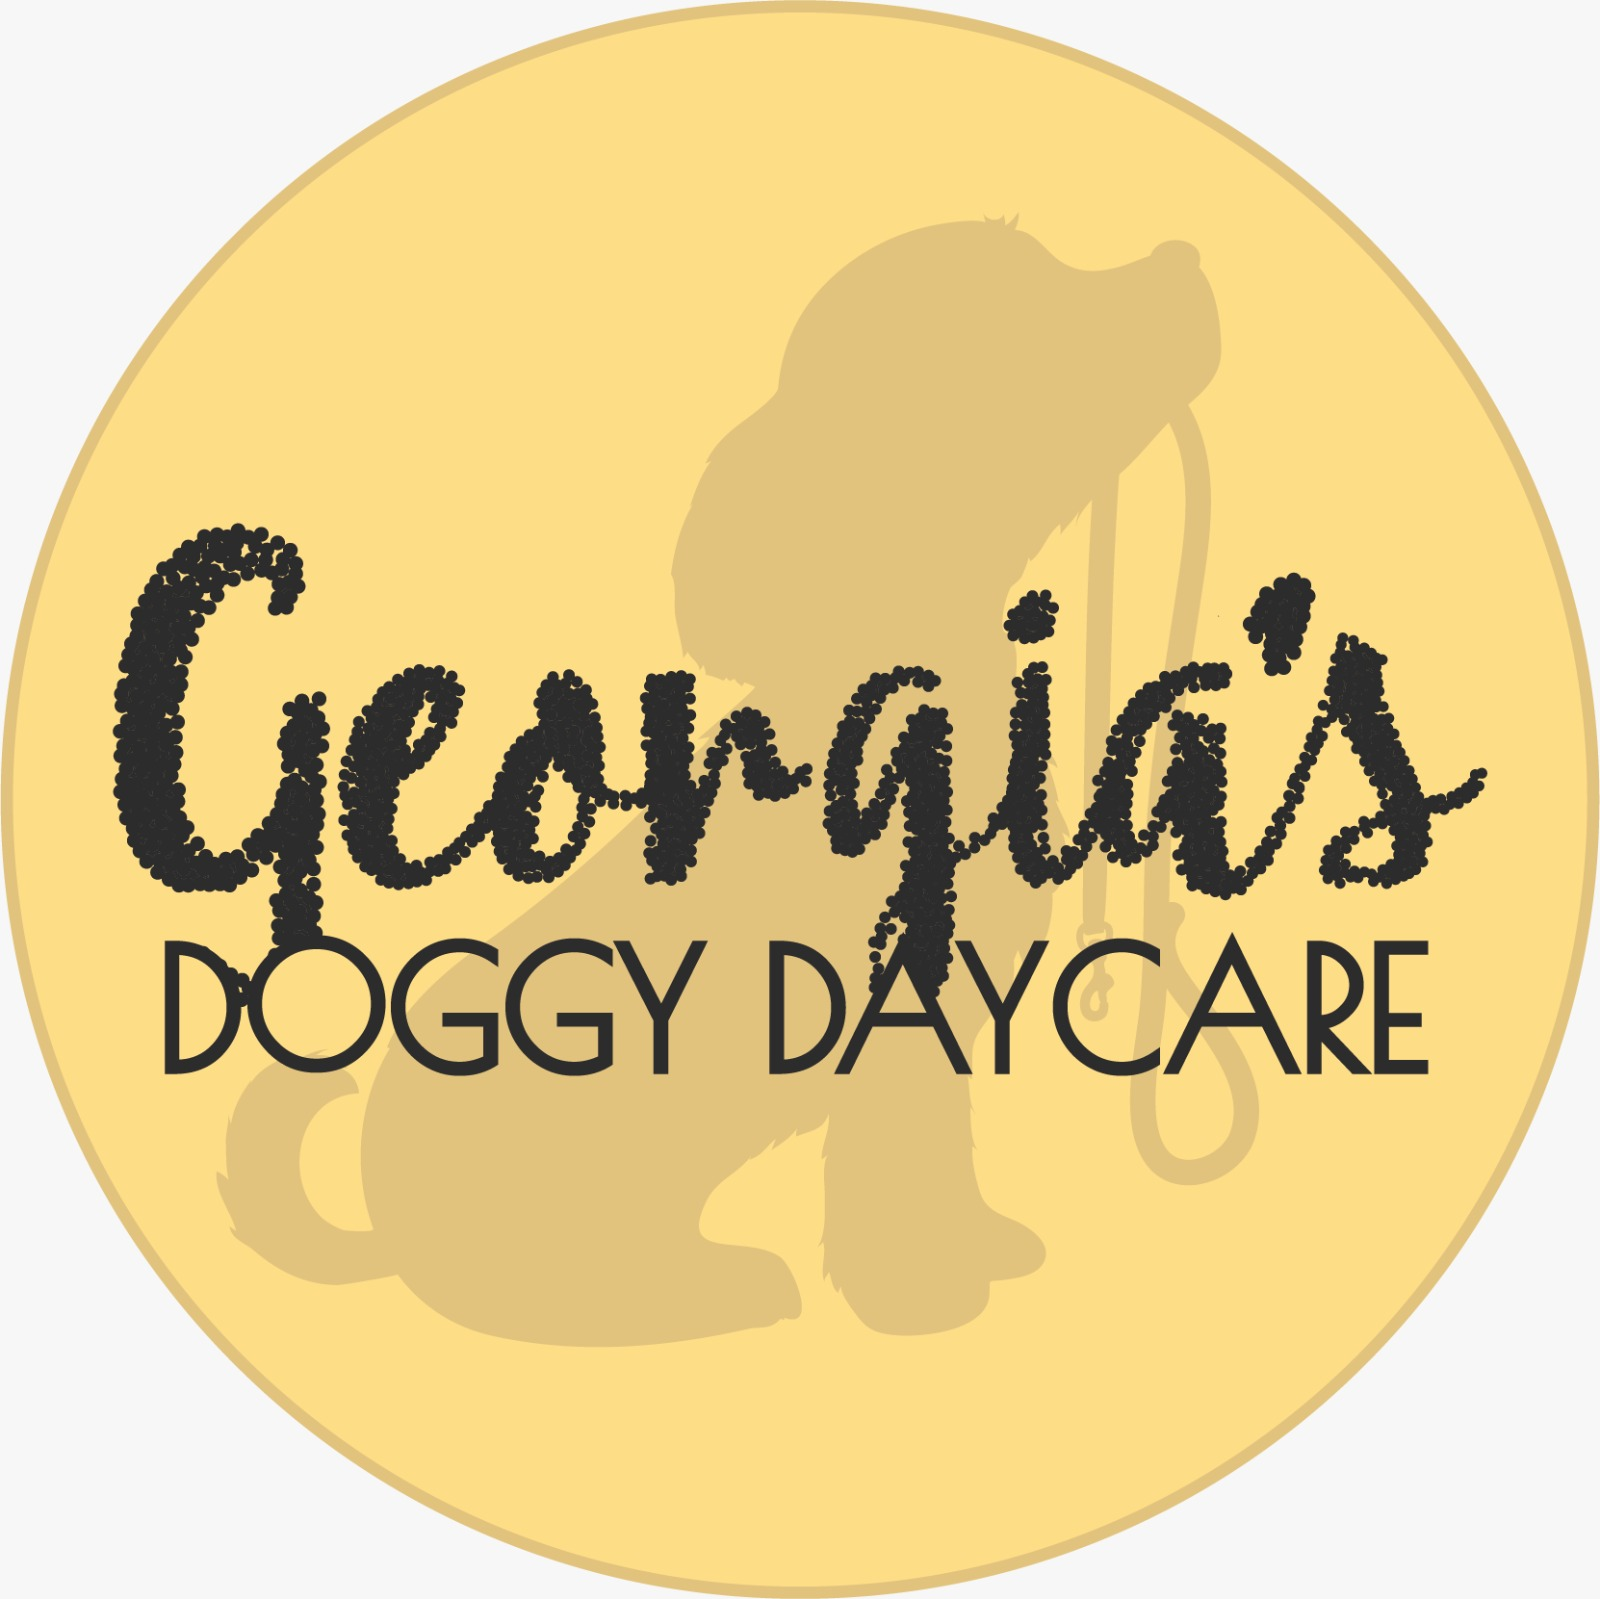 Georgias_Doggy_Daycare.jpeg